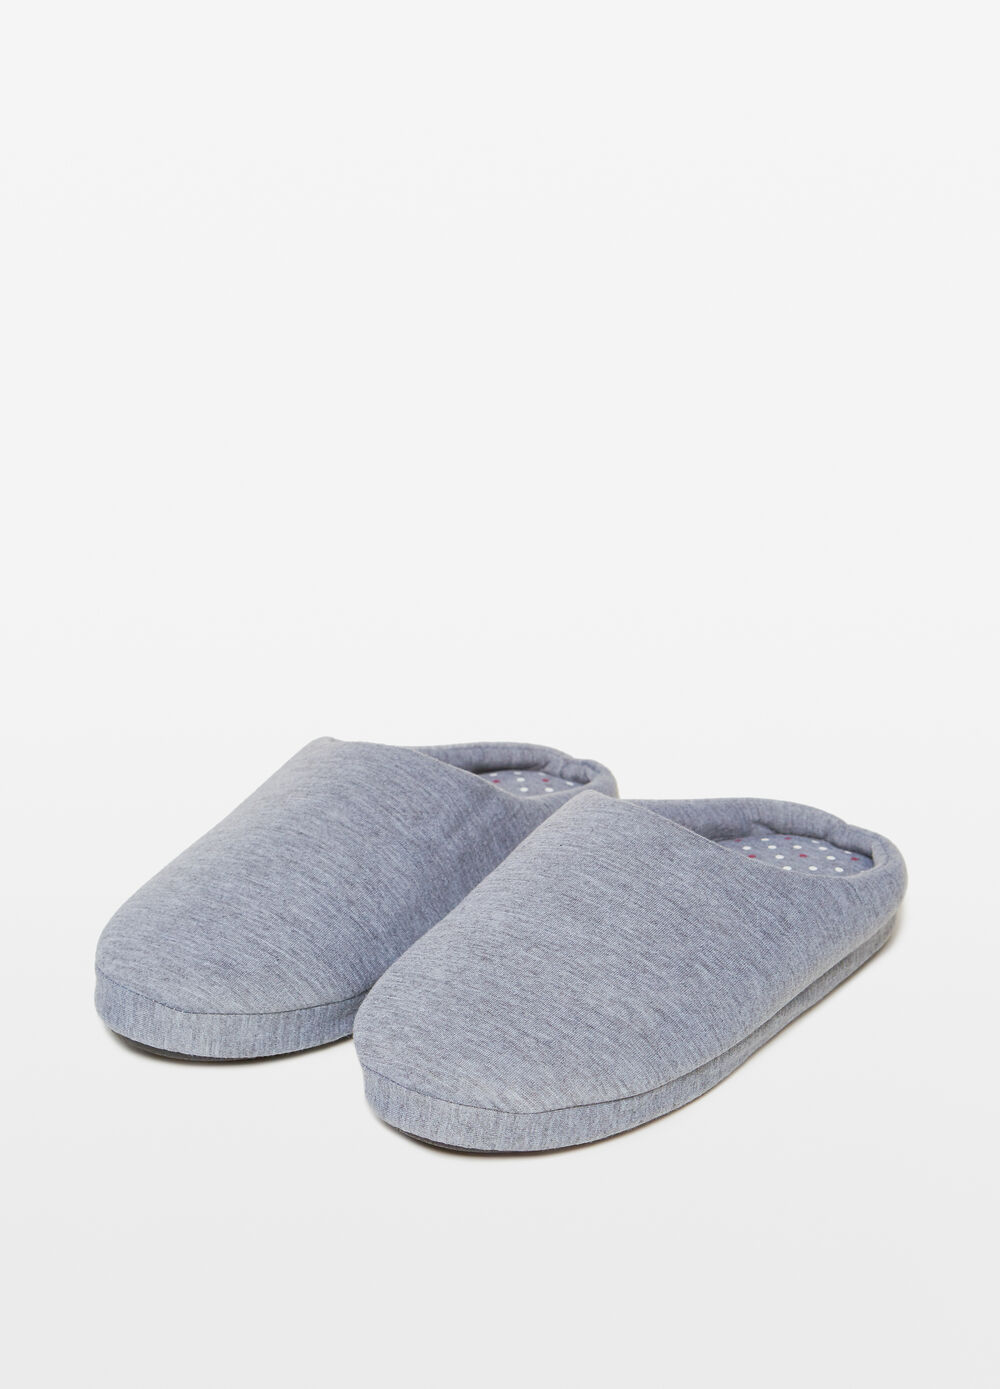 Solid colour microfibre slippers